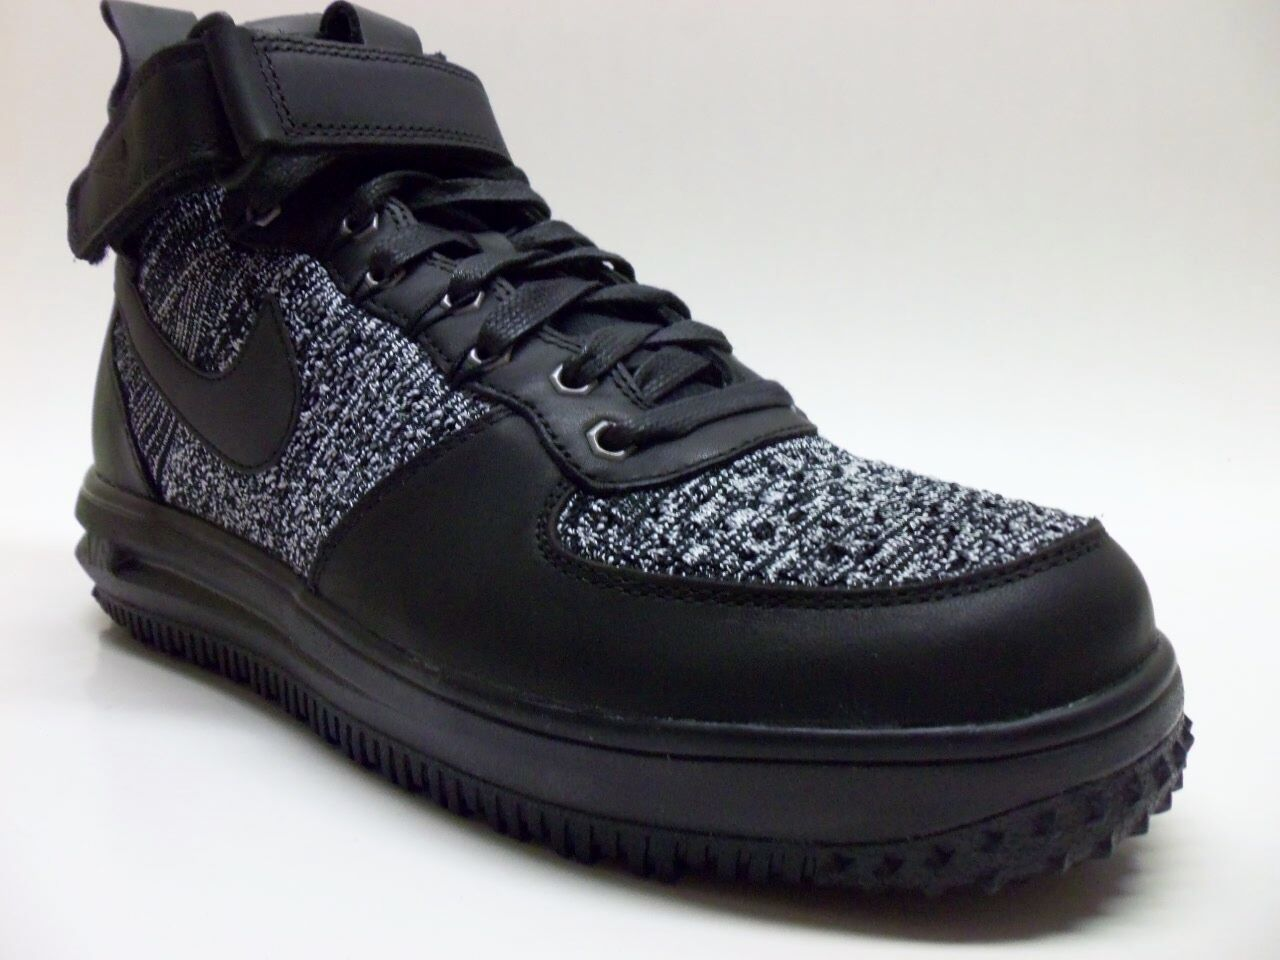 NIKE LF1 FLYKNIT WORKBOOT WORKBOOT WORKBOOT BLACK WHITE-COOL GREY SIZE WOMEN'S 9.5 11004e